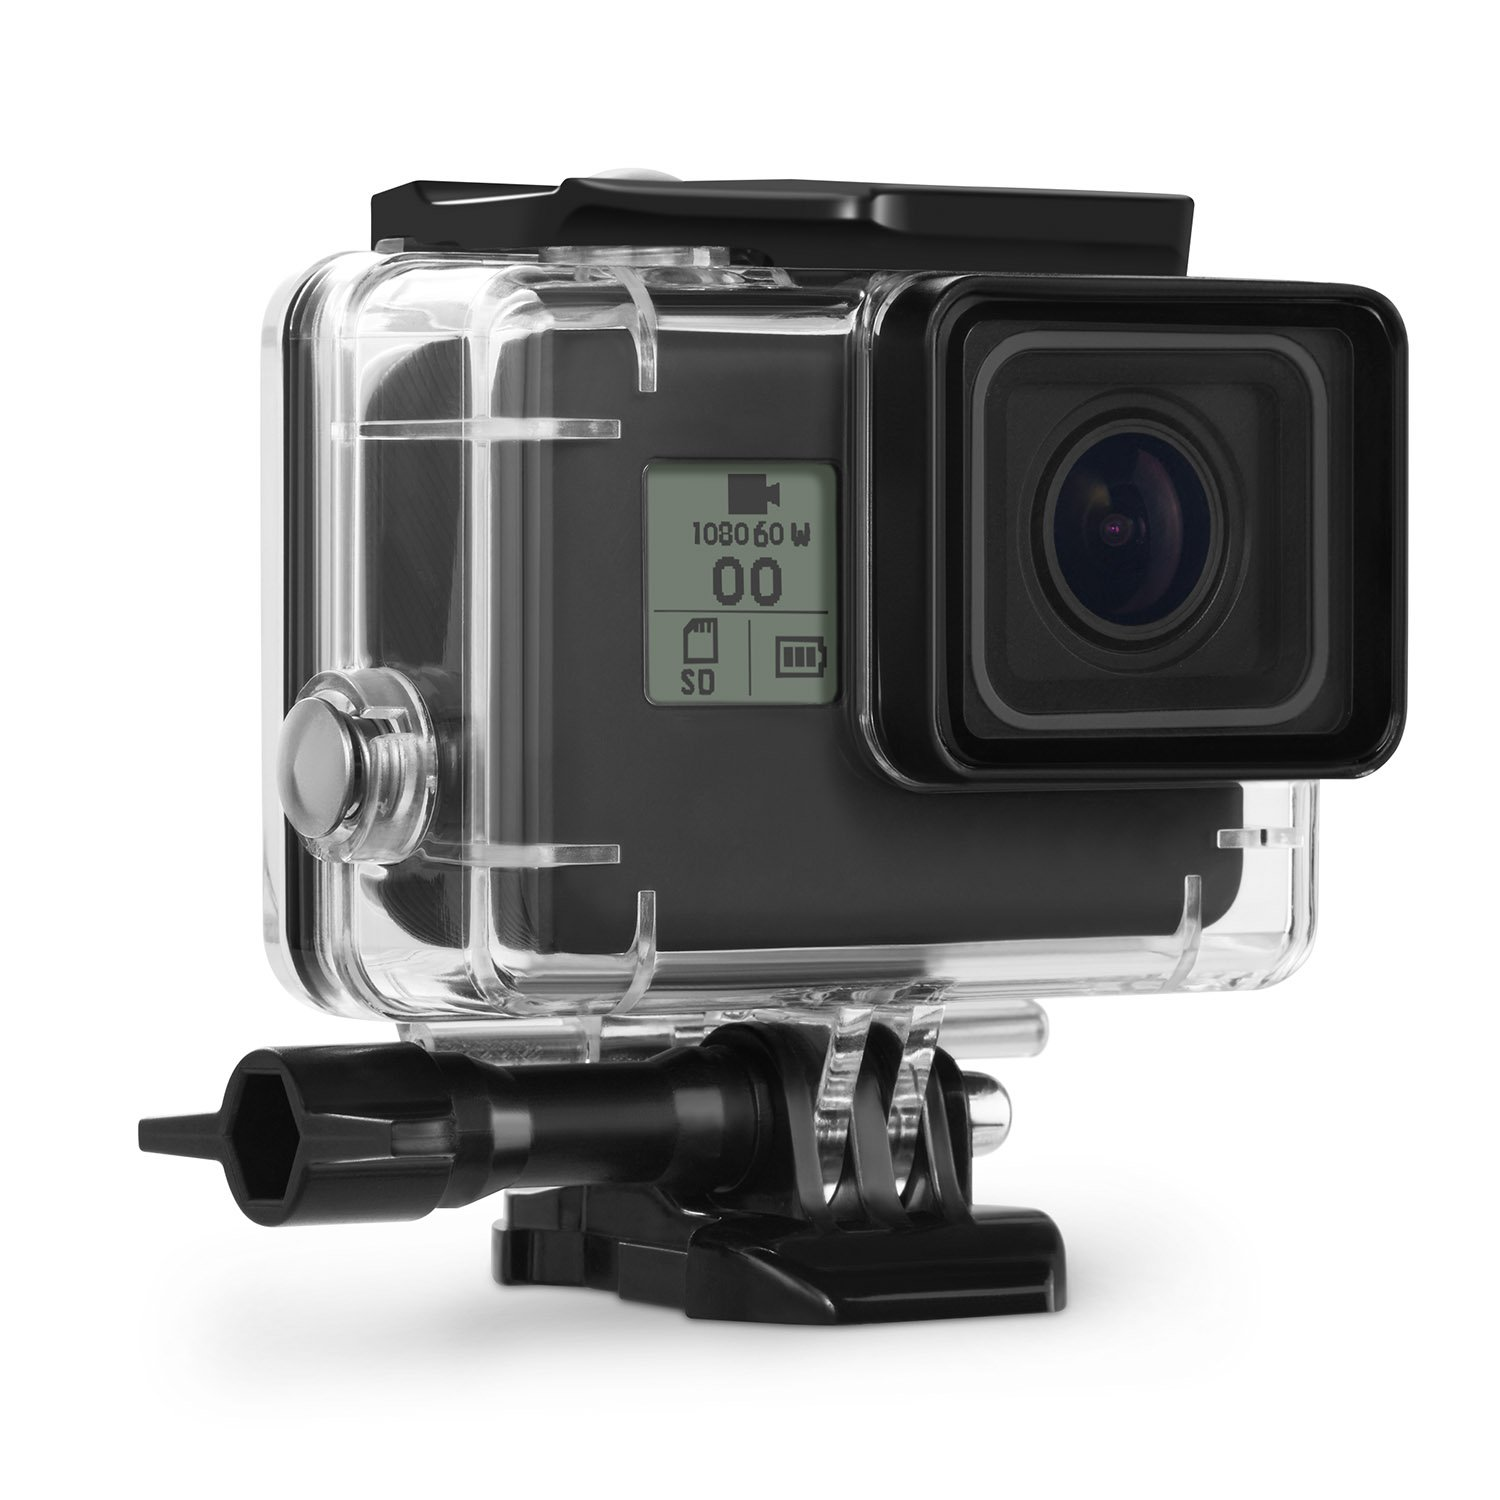 Kupton Waterproof Case for GoPro Hero 7 Black Hero 5 / 6 Accessories Housing Case Diving Protective Housing Shell 45 Meter for Go Pro Hero7 Hero6 Hero5 Hero 2018 Action Camera with Bracket Accessories by Kupton